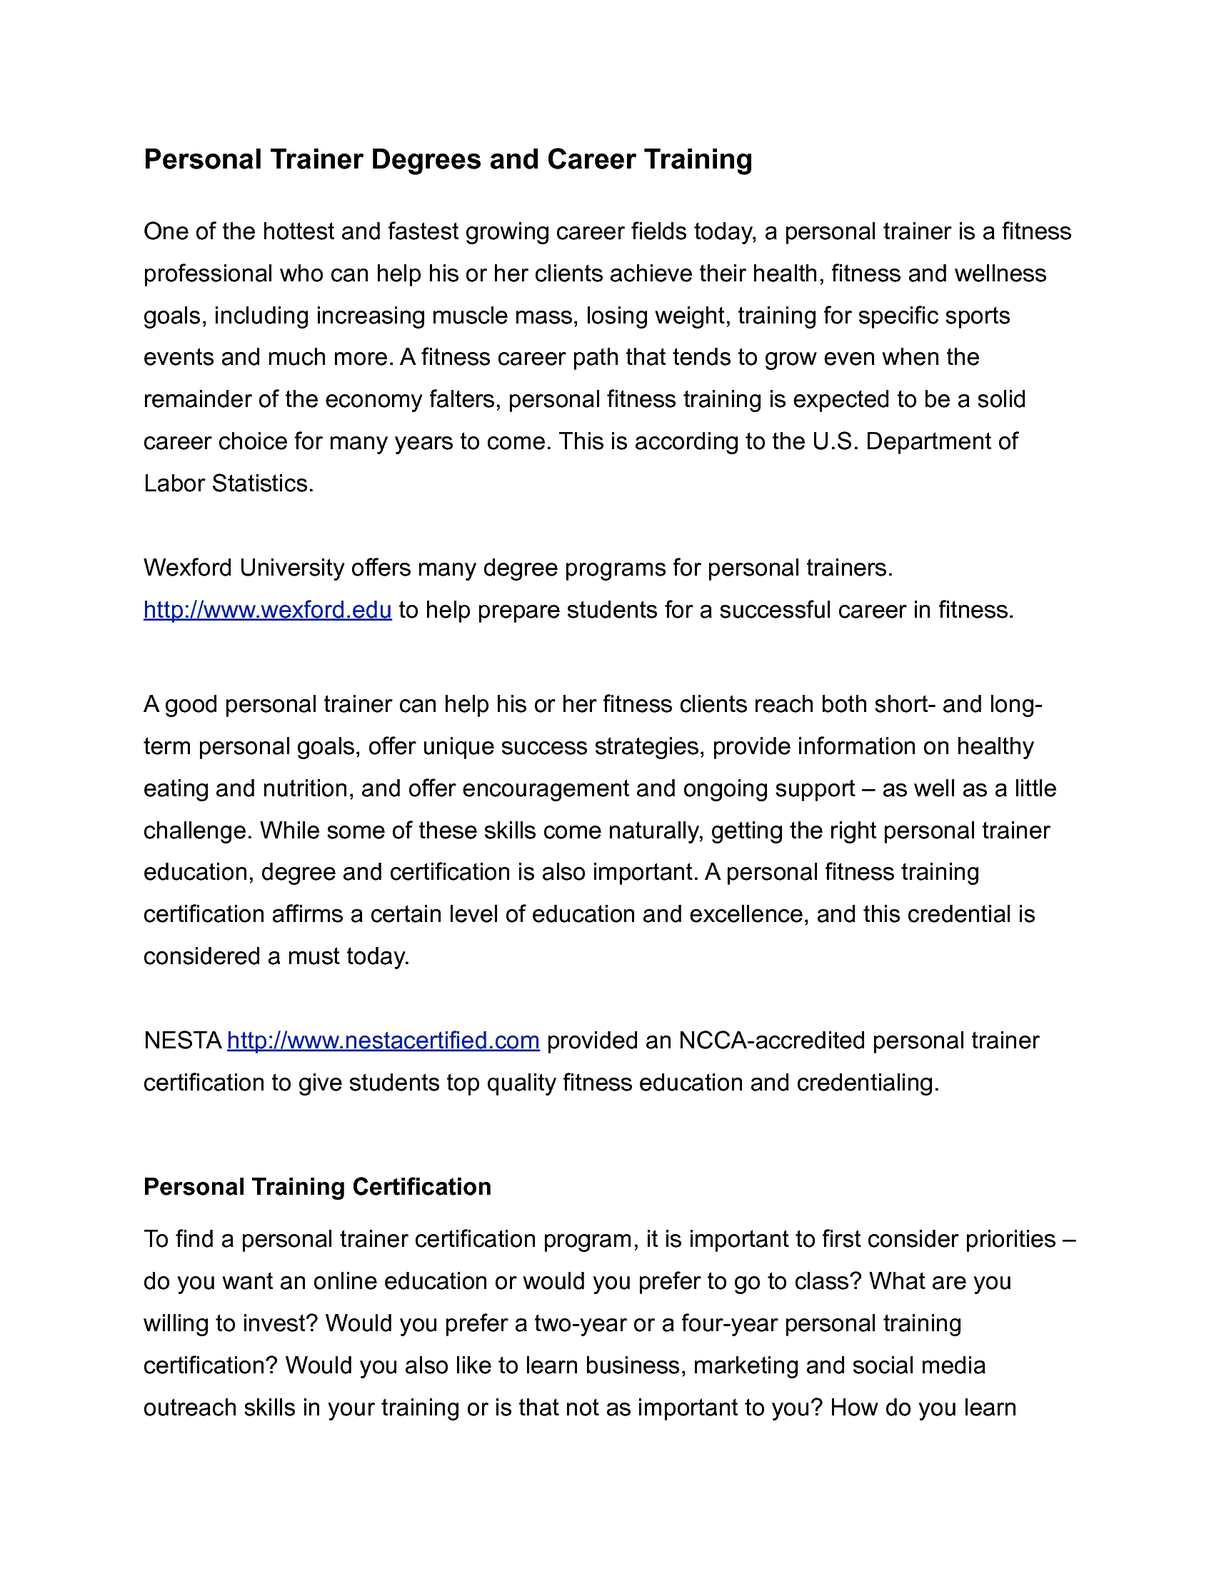 Calaméo - Personal Trainer Degree and Career Training